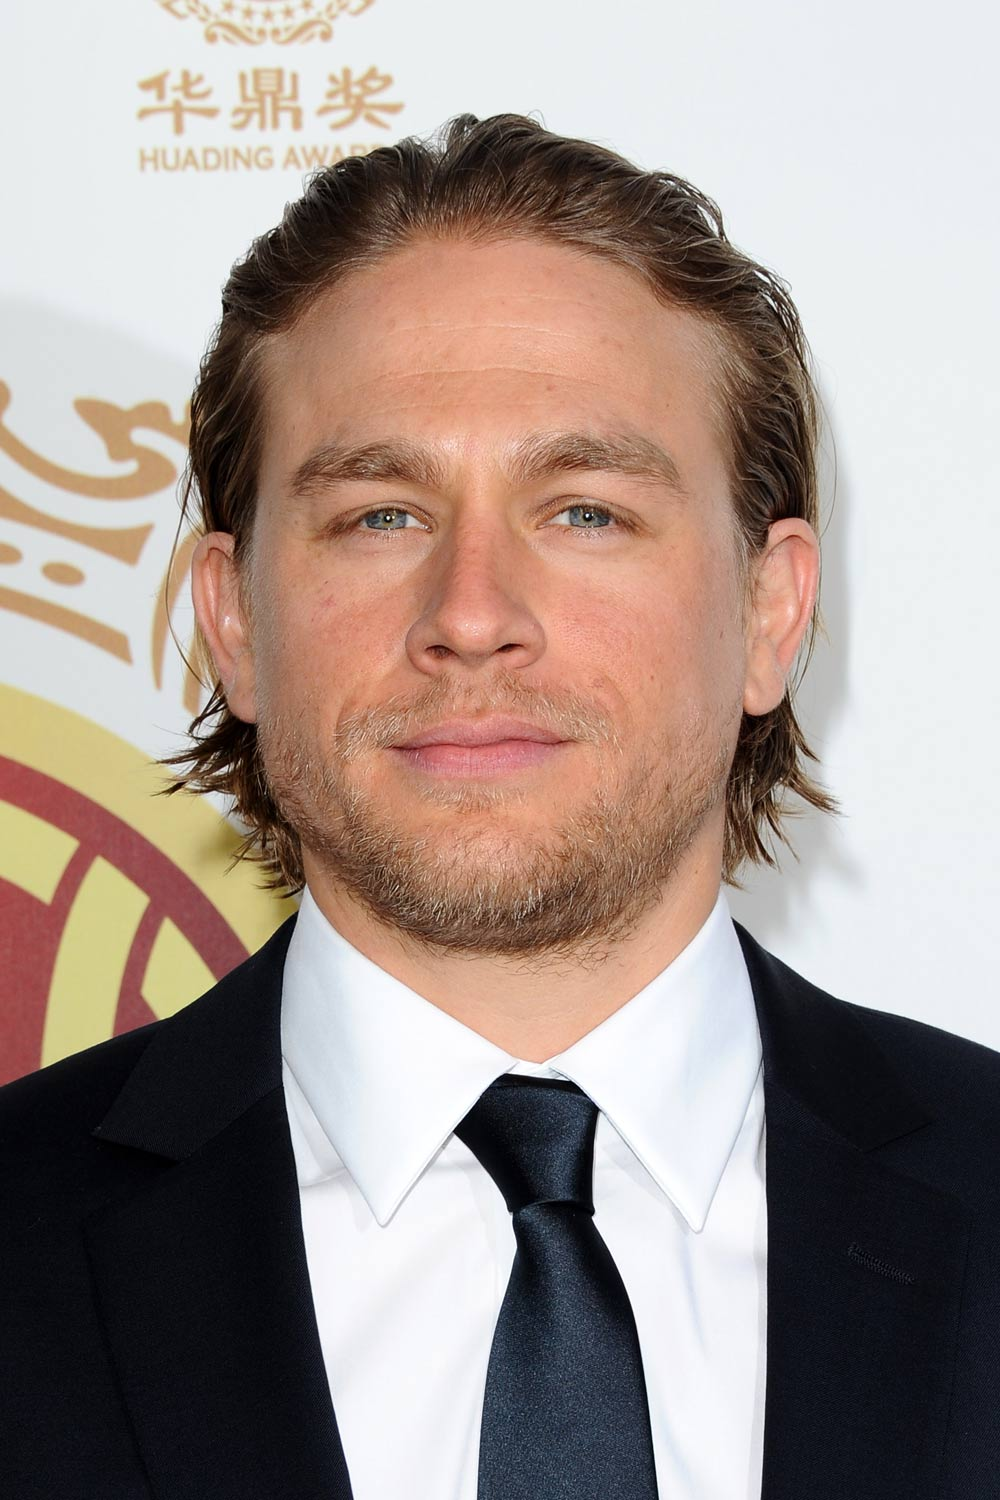 Charlie Hunnam Is Heartbroken About Missing Out On Fifty Shades Of Grey Movie